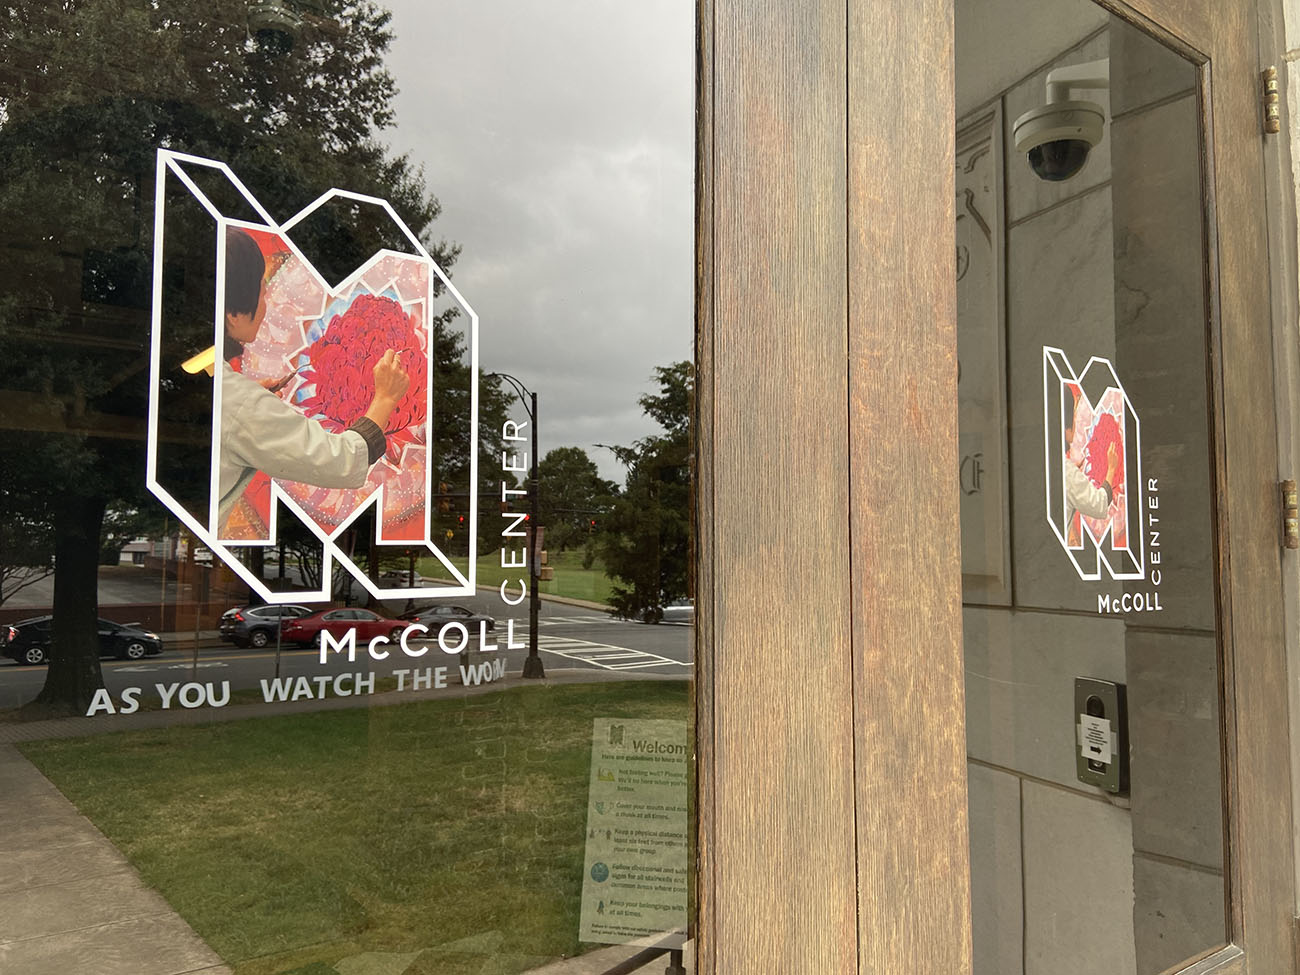 Exclusive: McColl Center receives $3.5 million endowment grant for its signature artist residency program